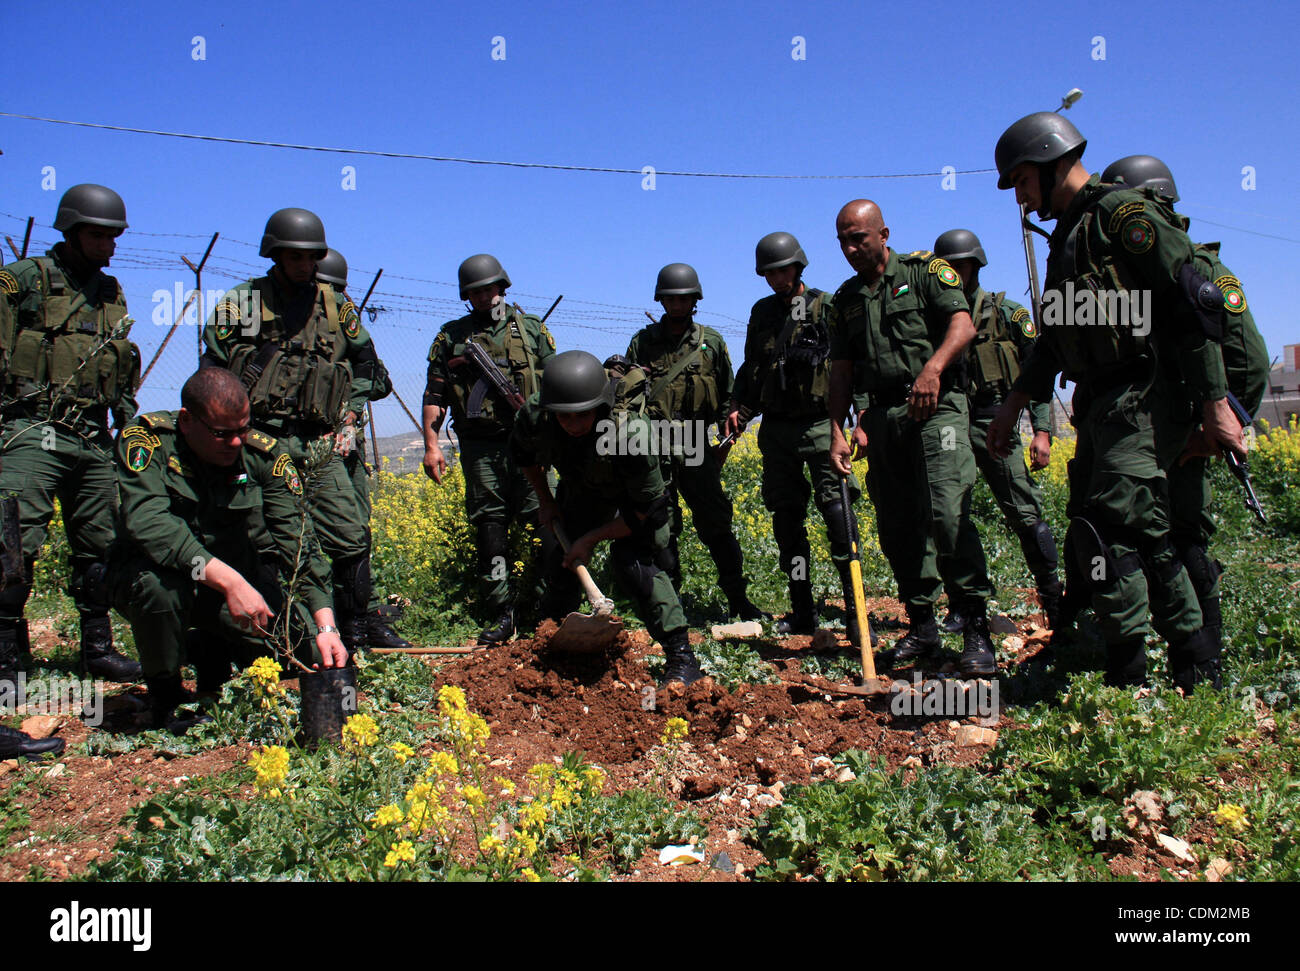 Palestinian security officers plant trees during an event marking Land Day, near the West Bank city of Nablus, Wednesday, - Stock Image